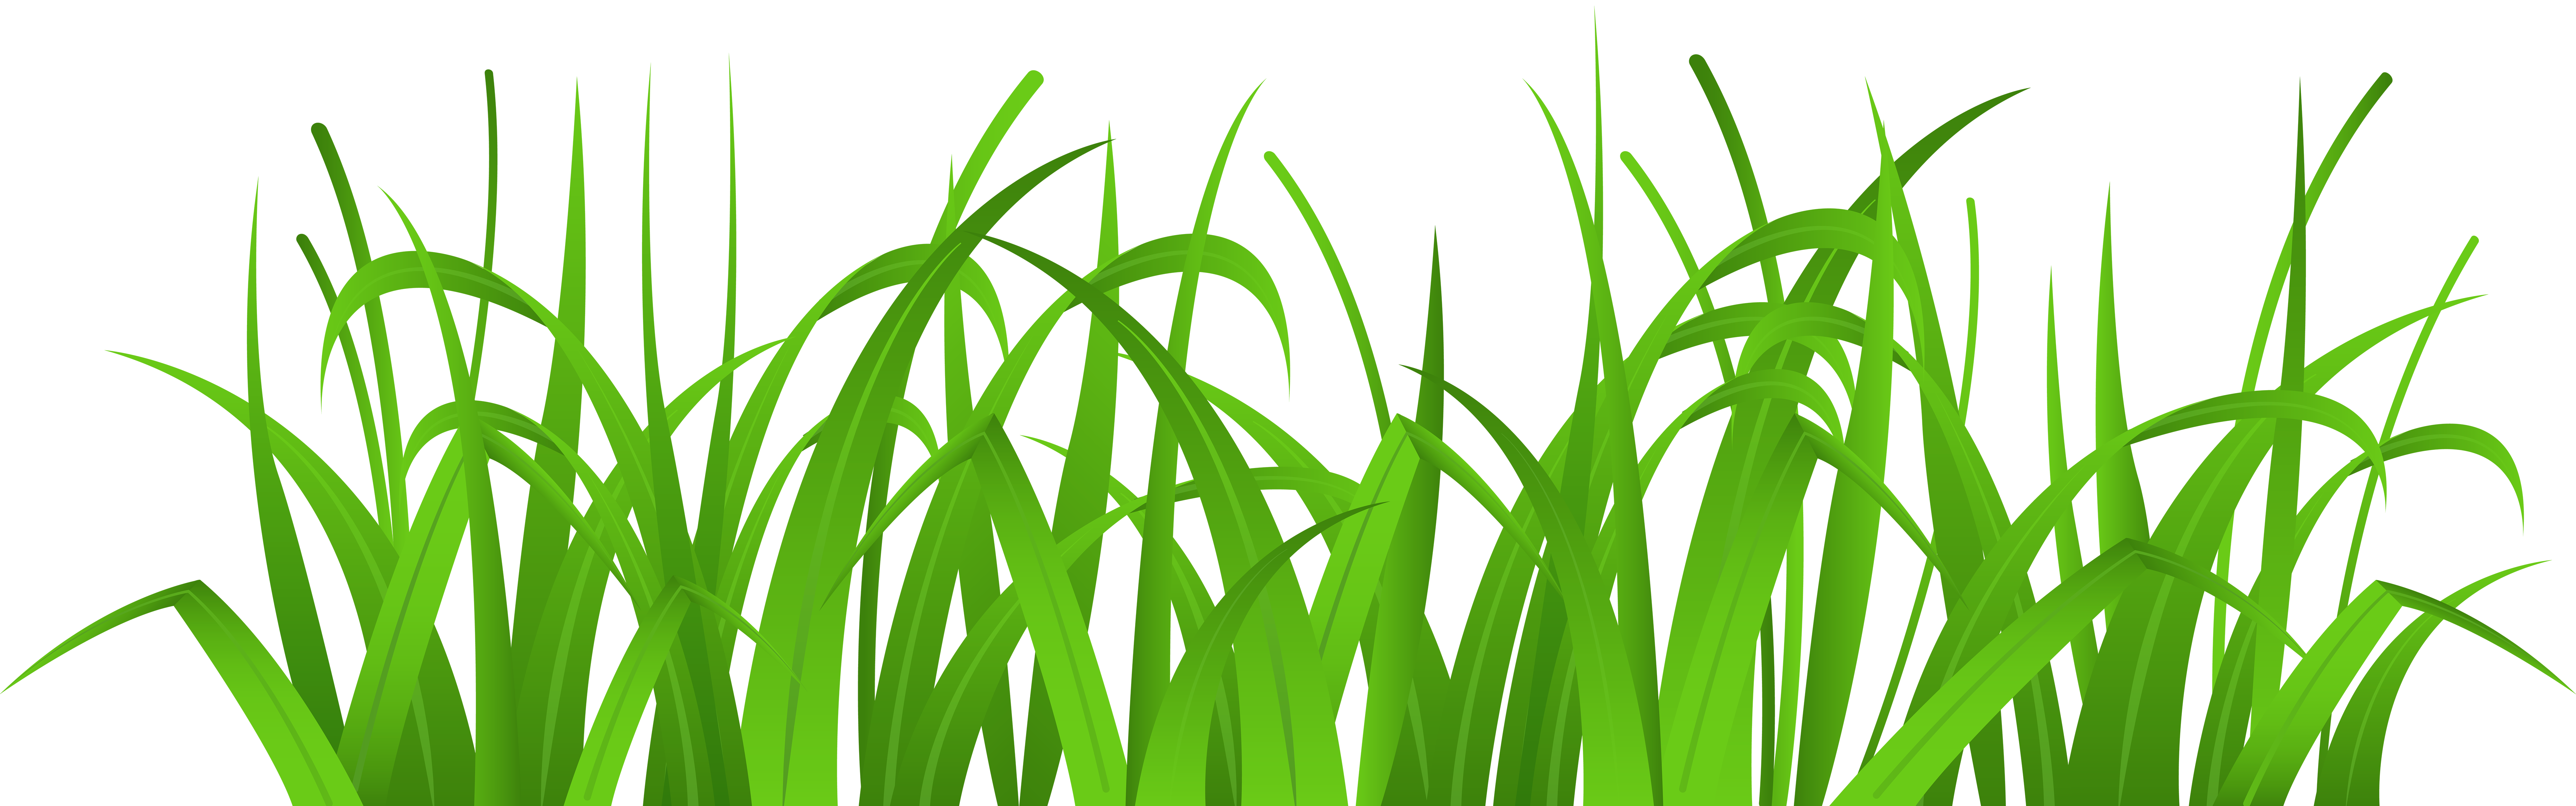 China grass clipart clipground